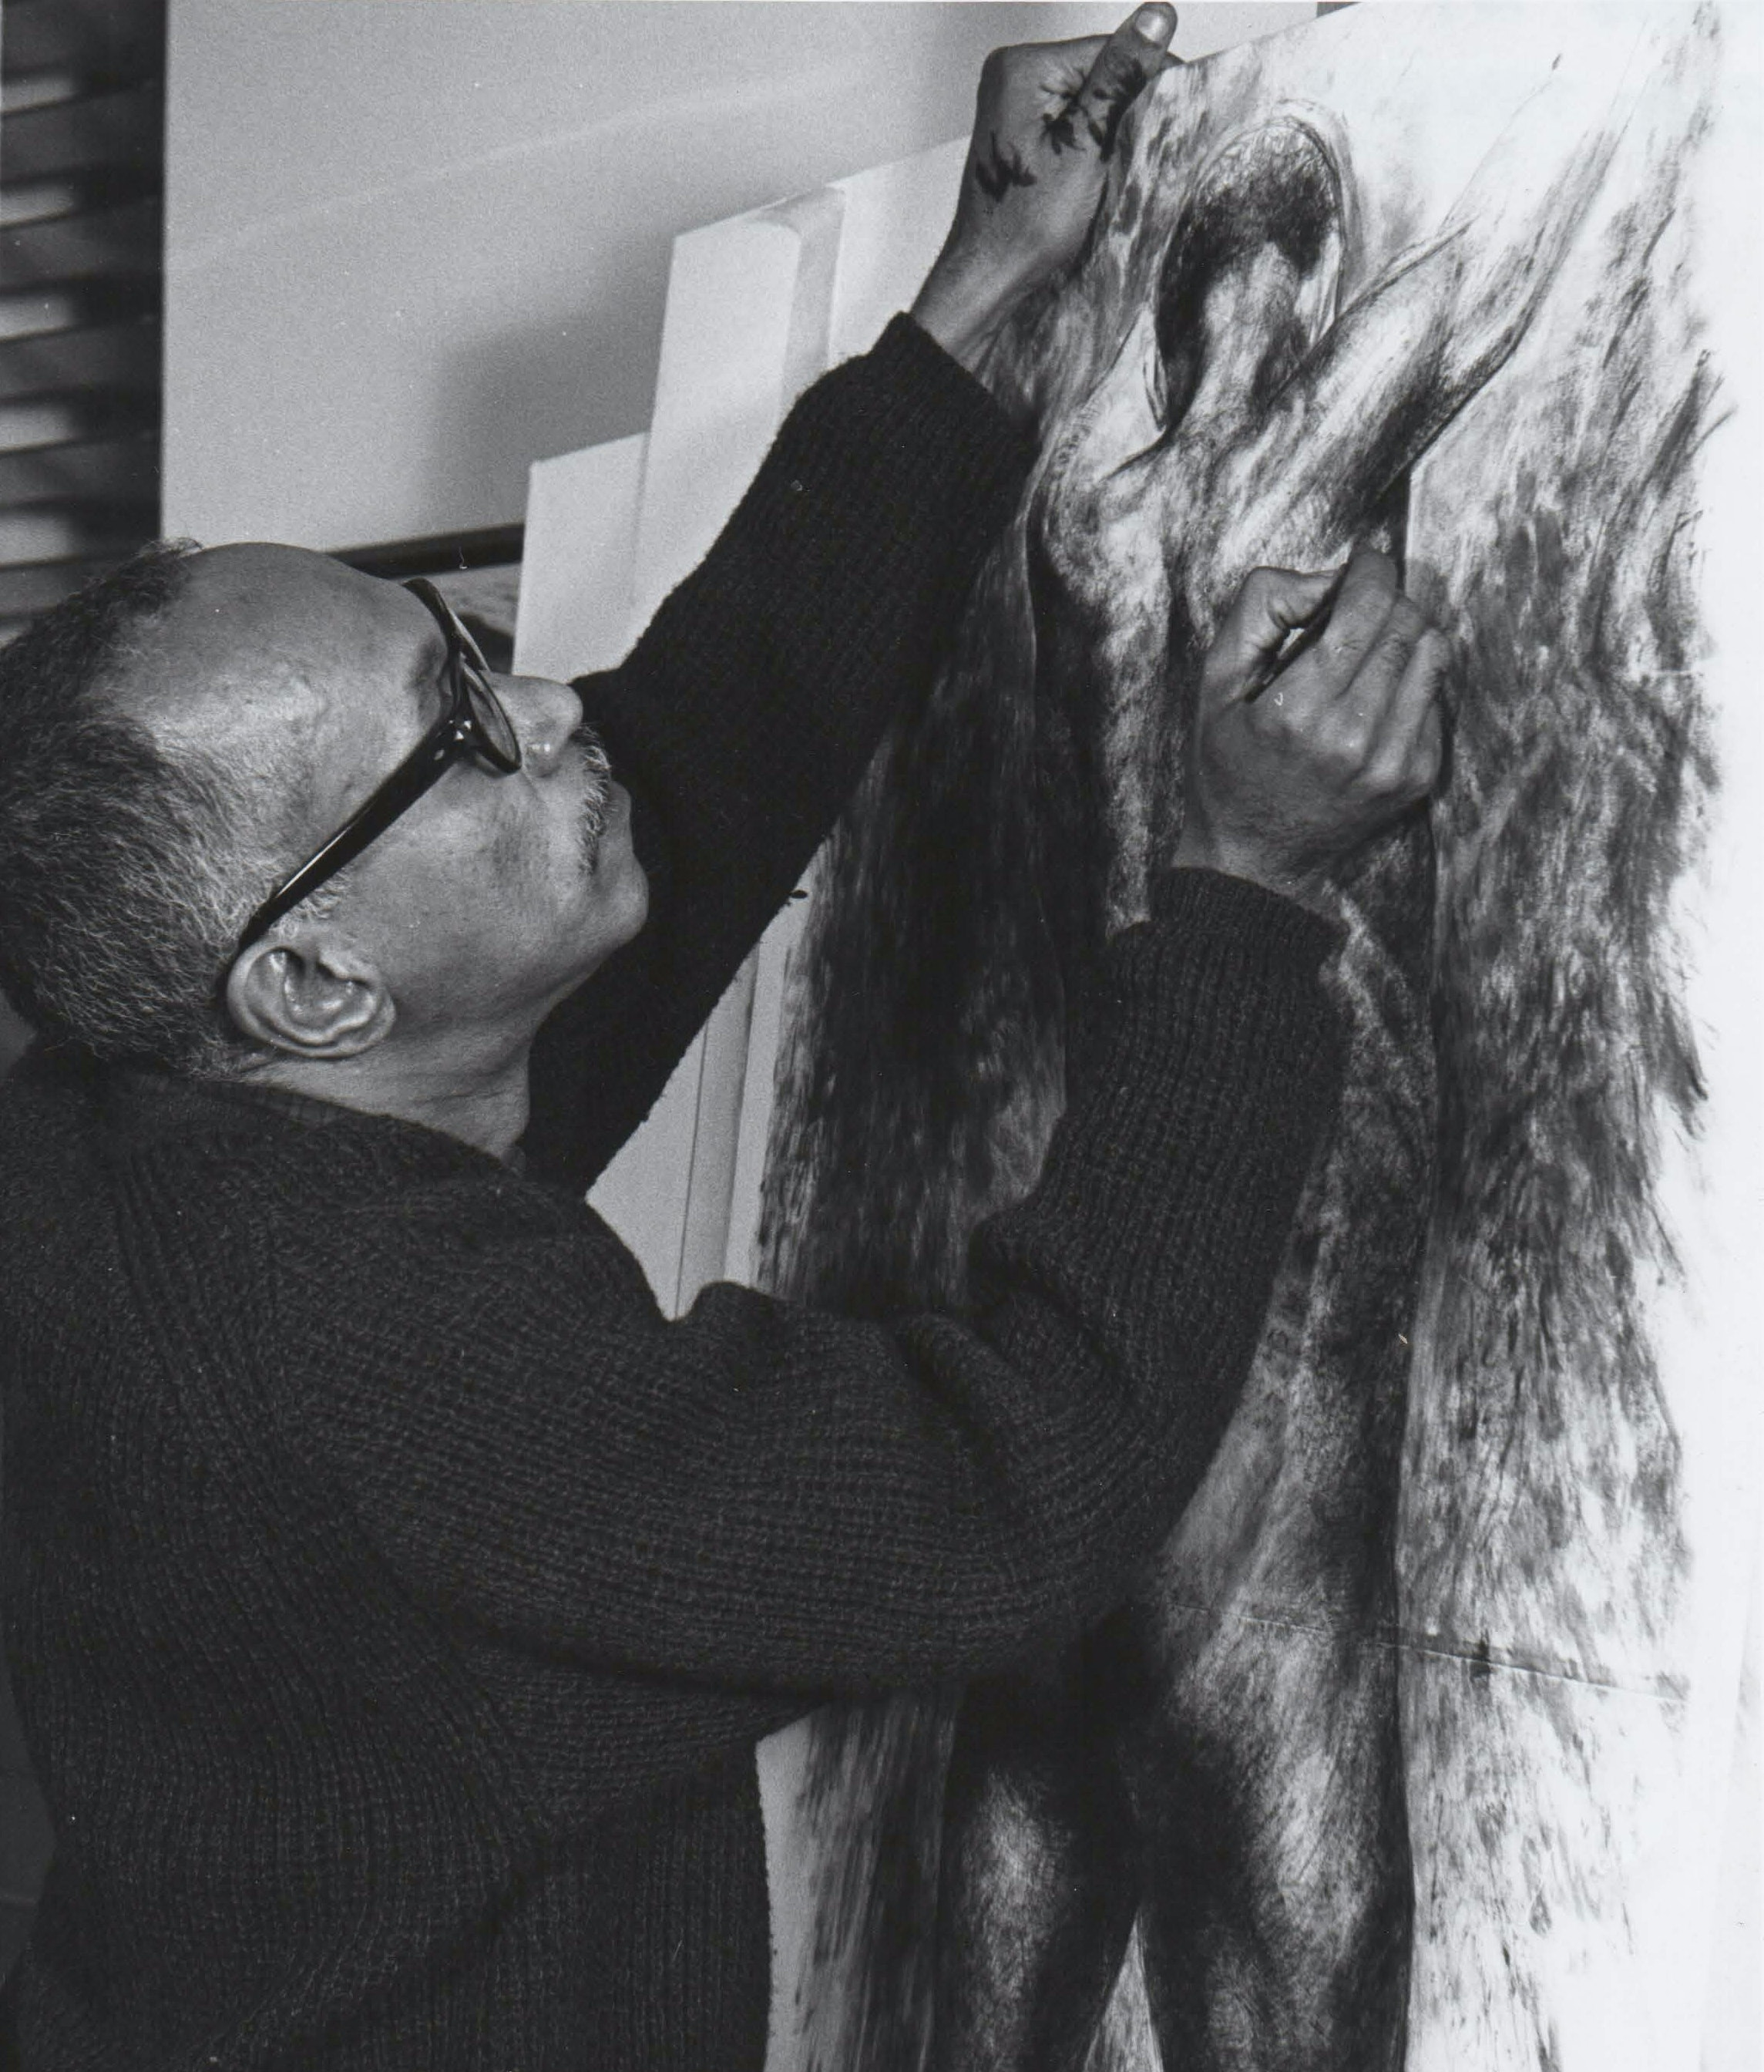 Photograph of the artist Charles White